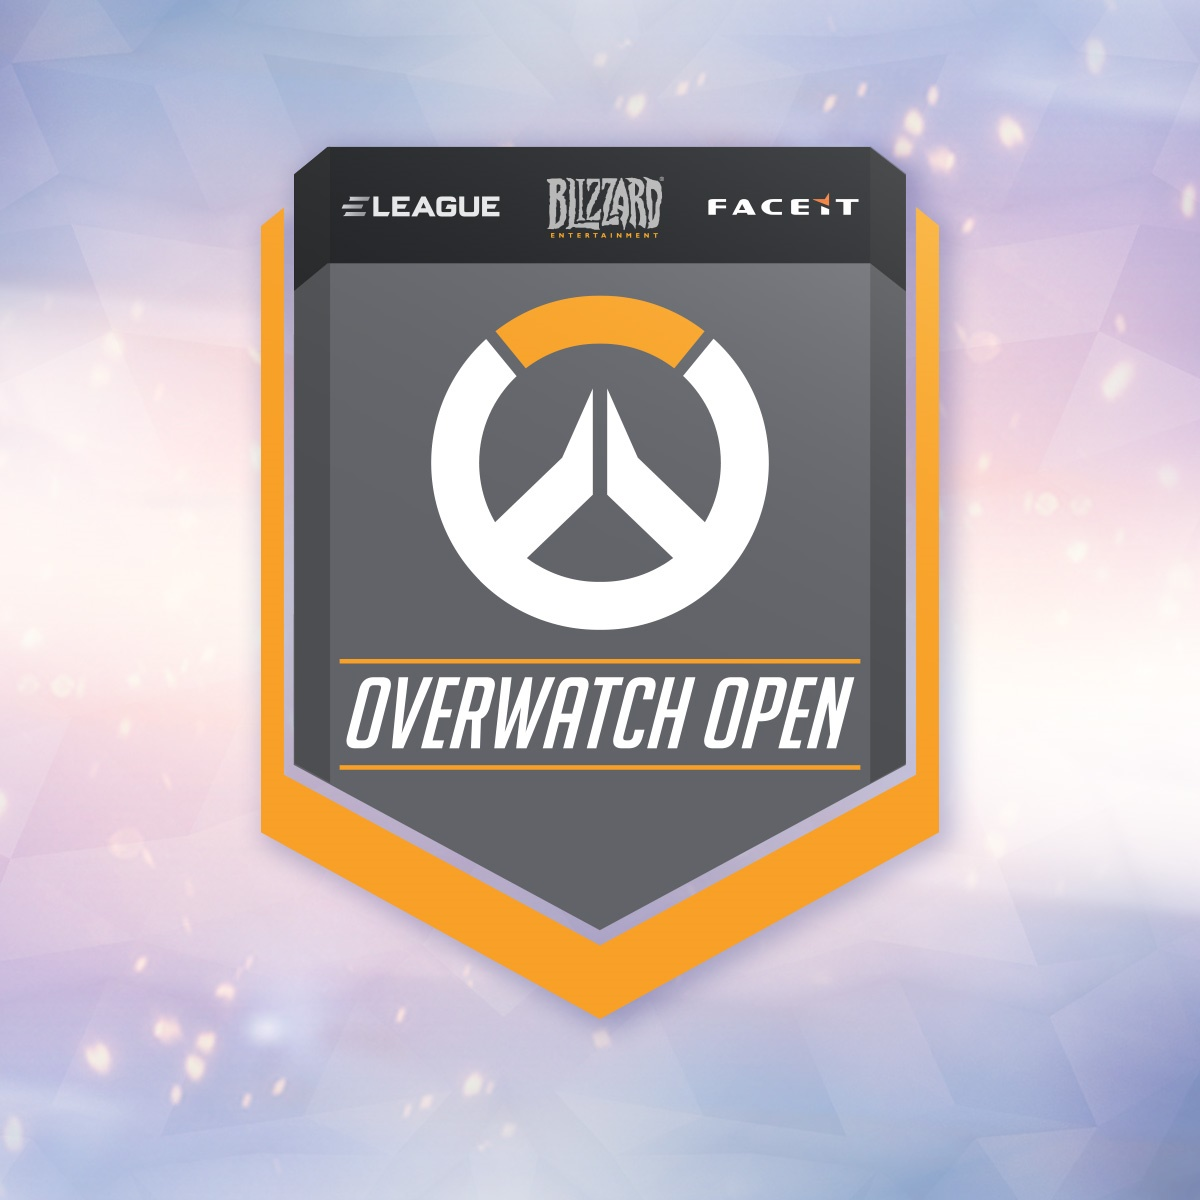 The Overwatch Open tournament in Atlanta presented by ELEAGUE and FACEIT, are next weekend at Turner Studios ELEAGUE arena